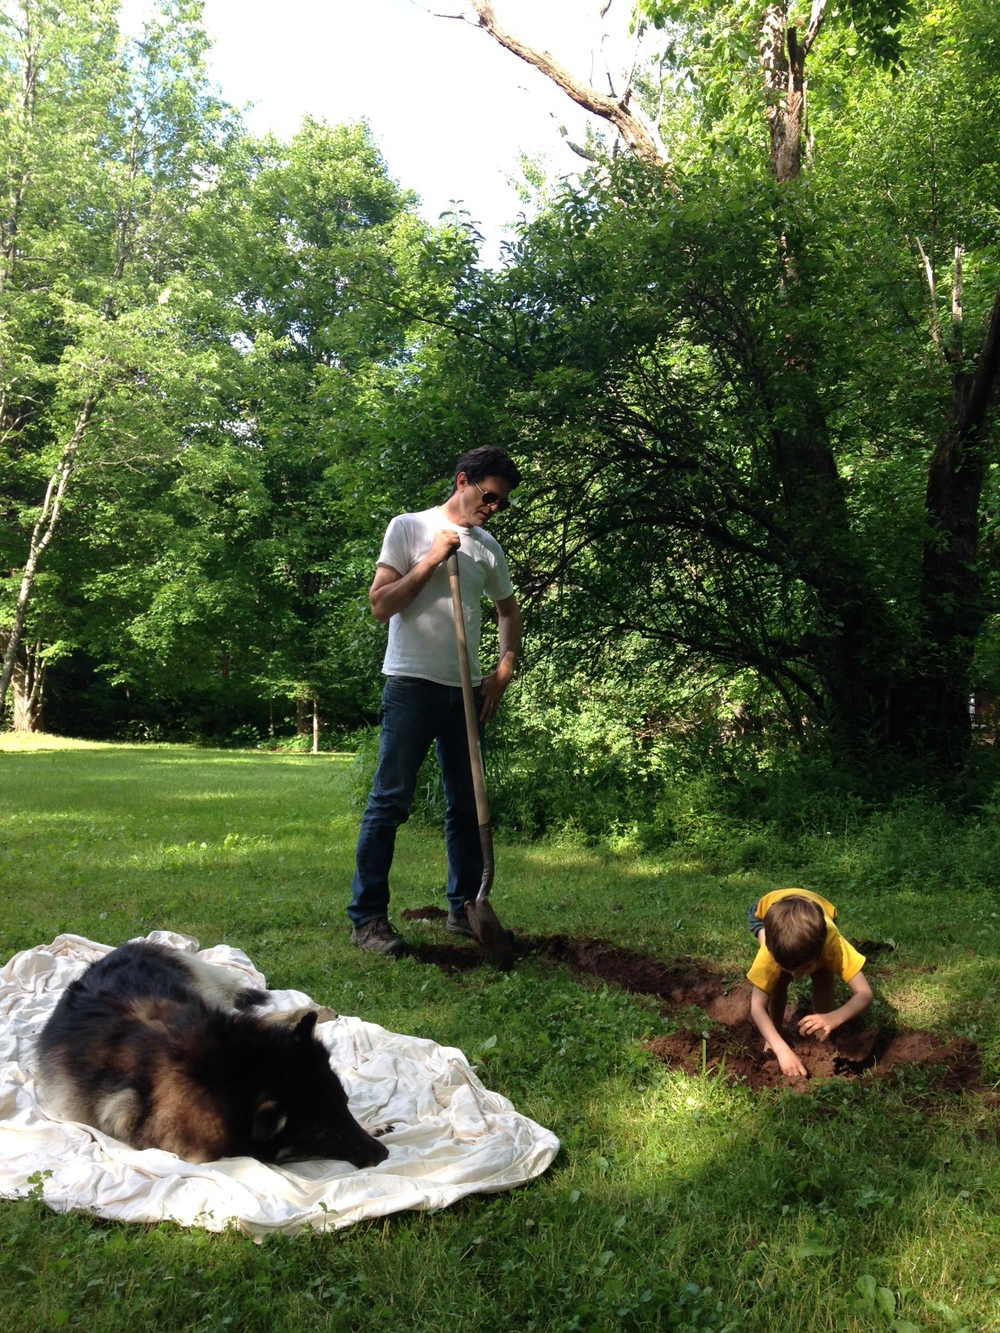 Here is a quick iphone shot I took of my husband, playing my dad,  who dug the grave for our dog in our backyard.